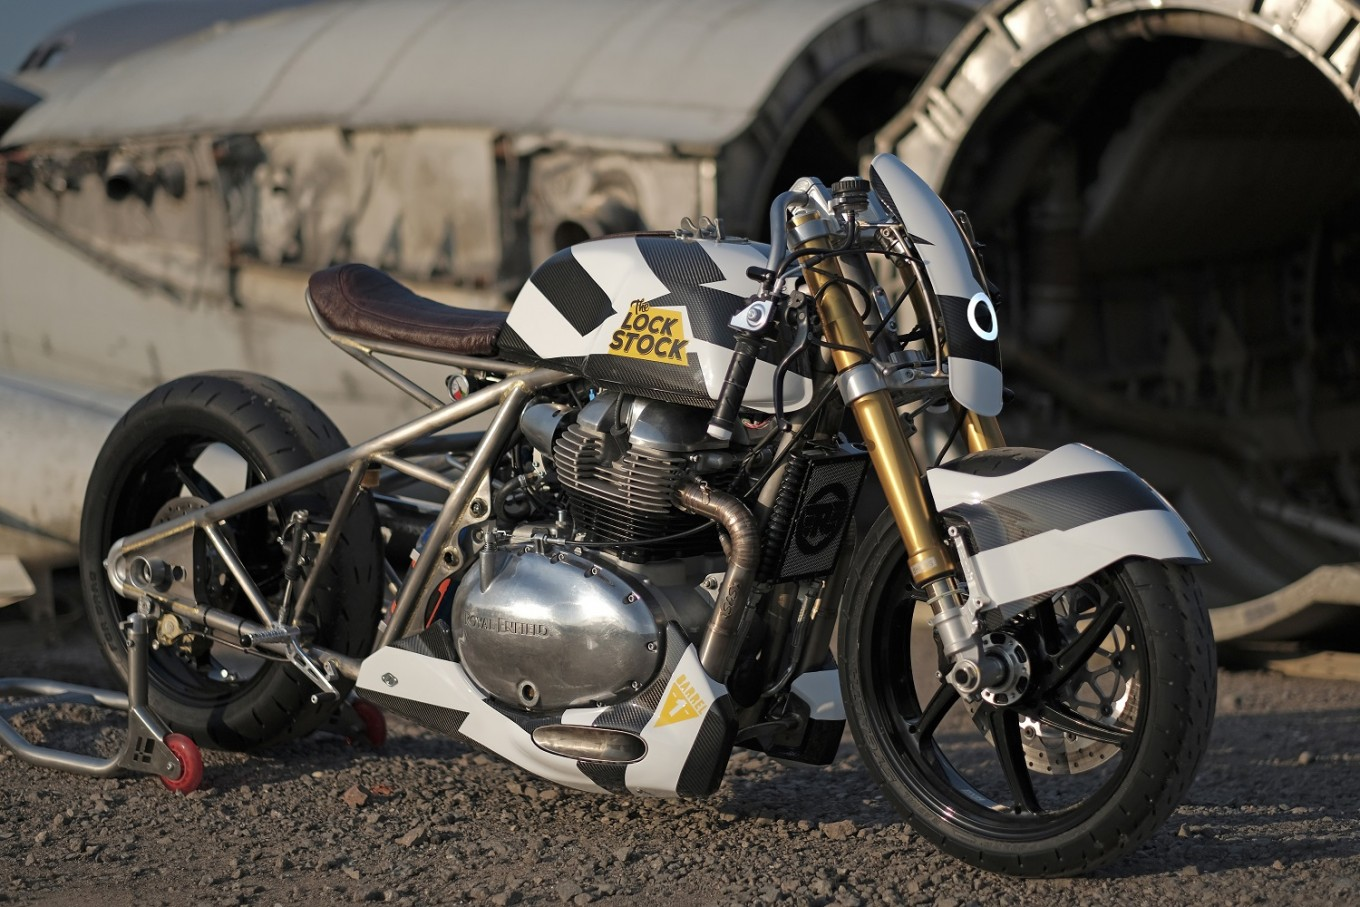 Custom Bikes   Motorcycle Show   Best Motorcycle Riding